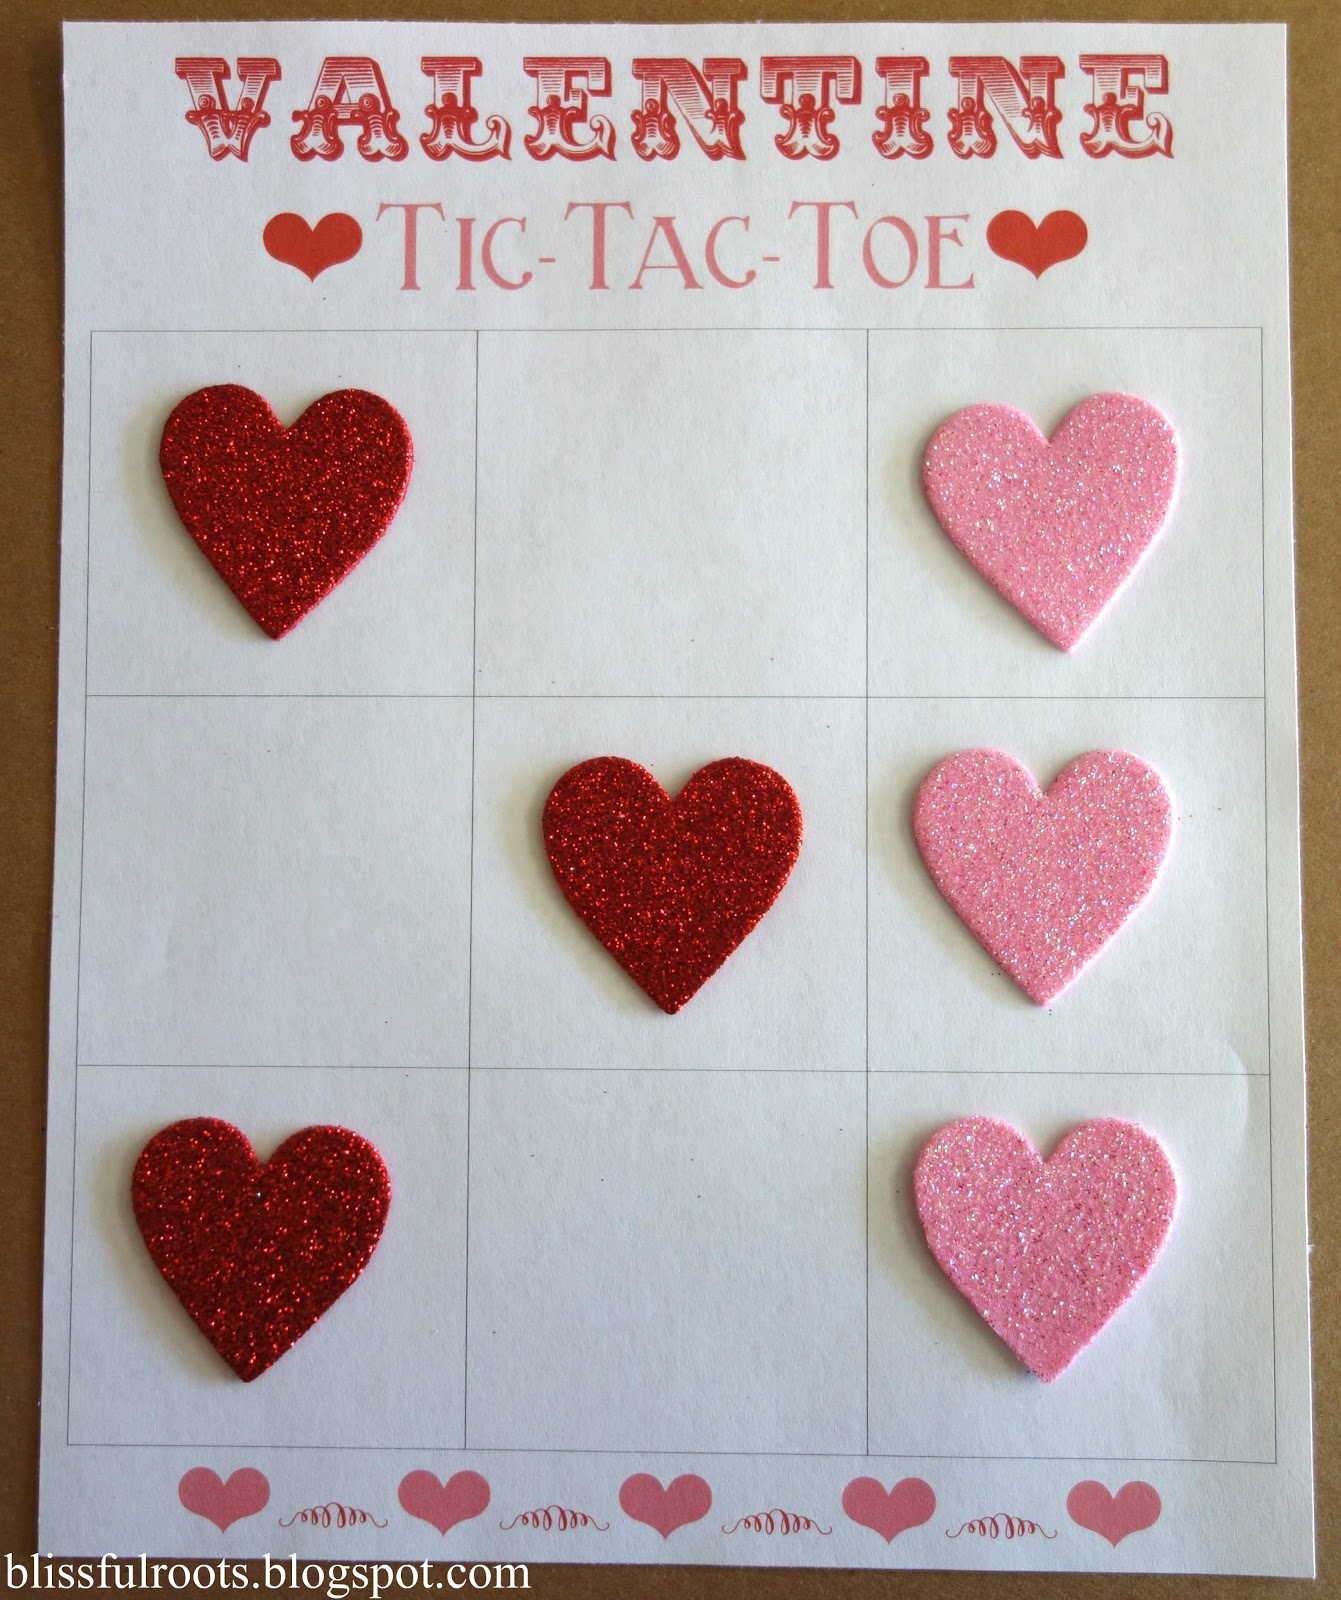 This is a picture of Clean Valentine Tic Tac Toe Printable